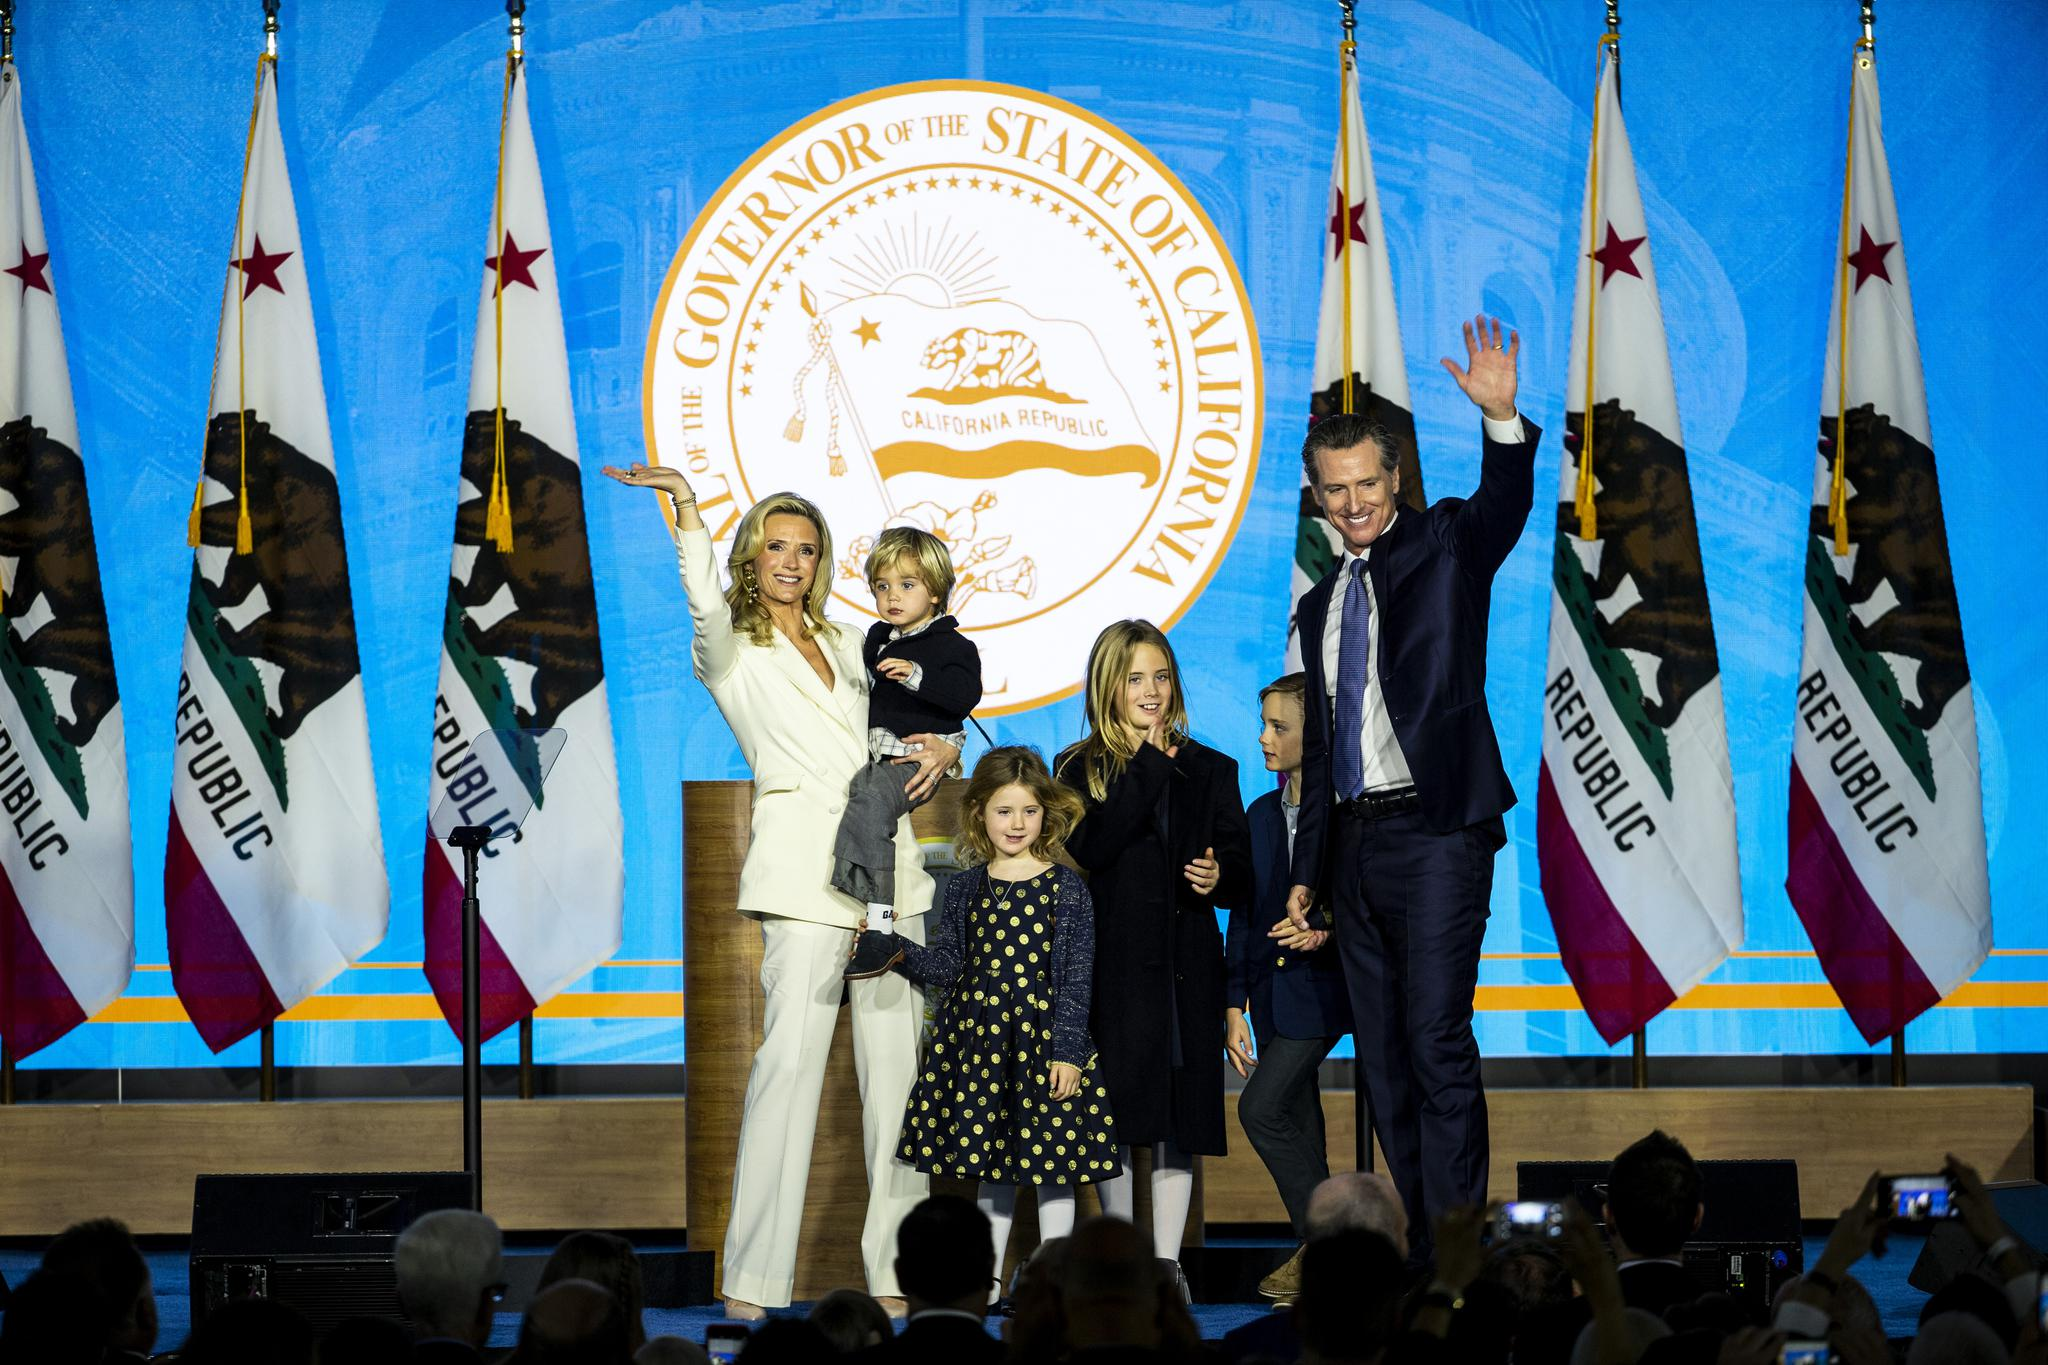 Calif. Gov. Newsom To Pass On Governor's